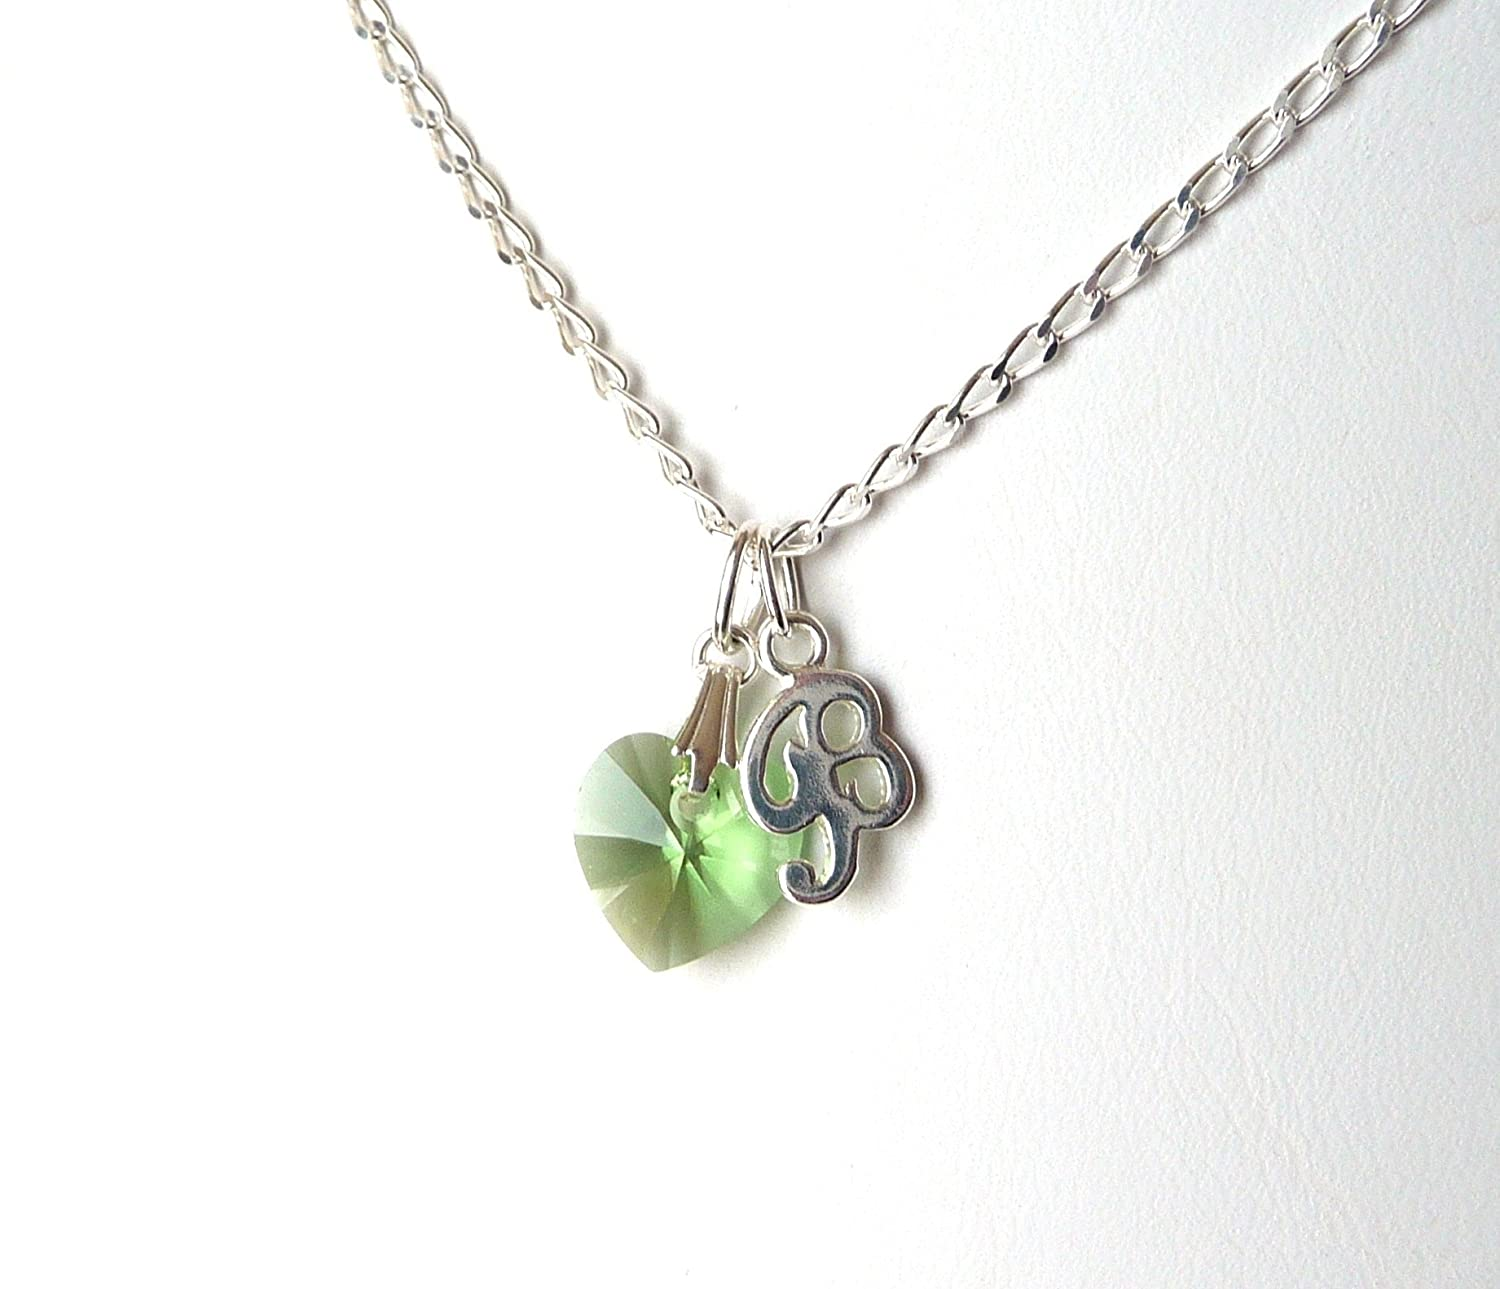 Personalized Necklace With Birthstone Tween Girl Jewelry CHOOSE COLOR LETTER SIZE Gifts Birthday